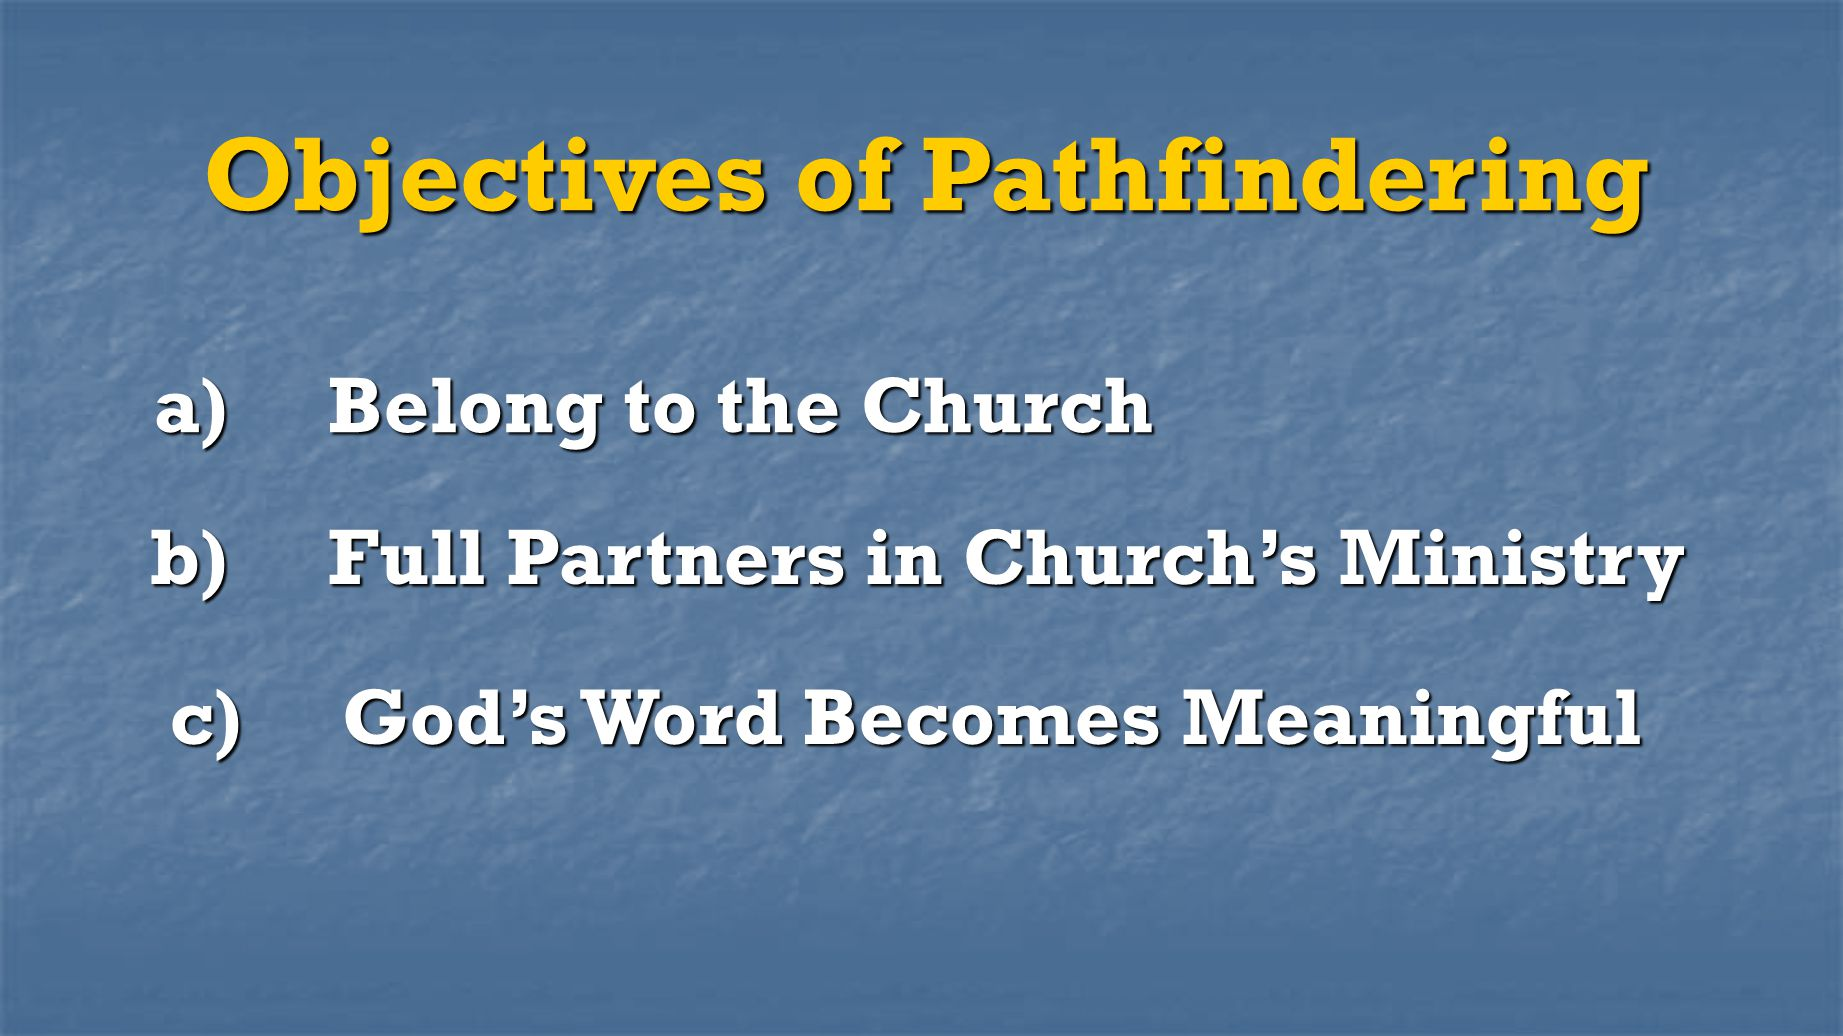 Objectives of Pathfindering a) Belong to the Church b) Full Partners in Church's Ministry c) God's Word Becomes Meaningful